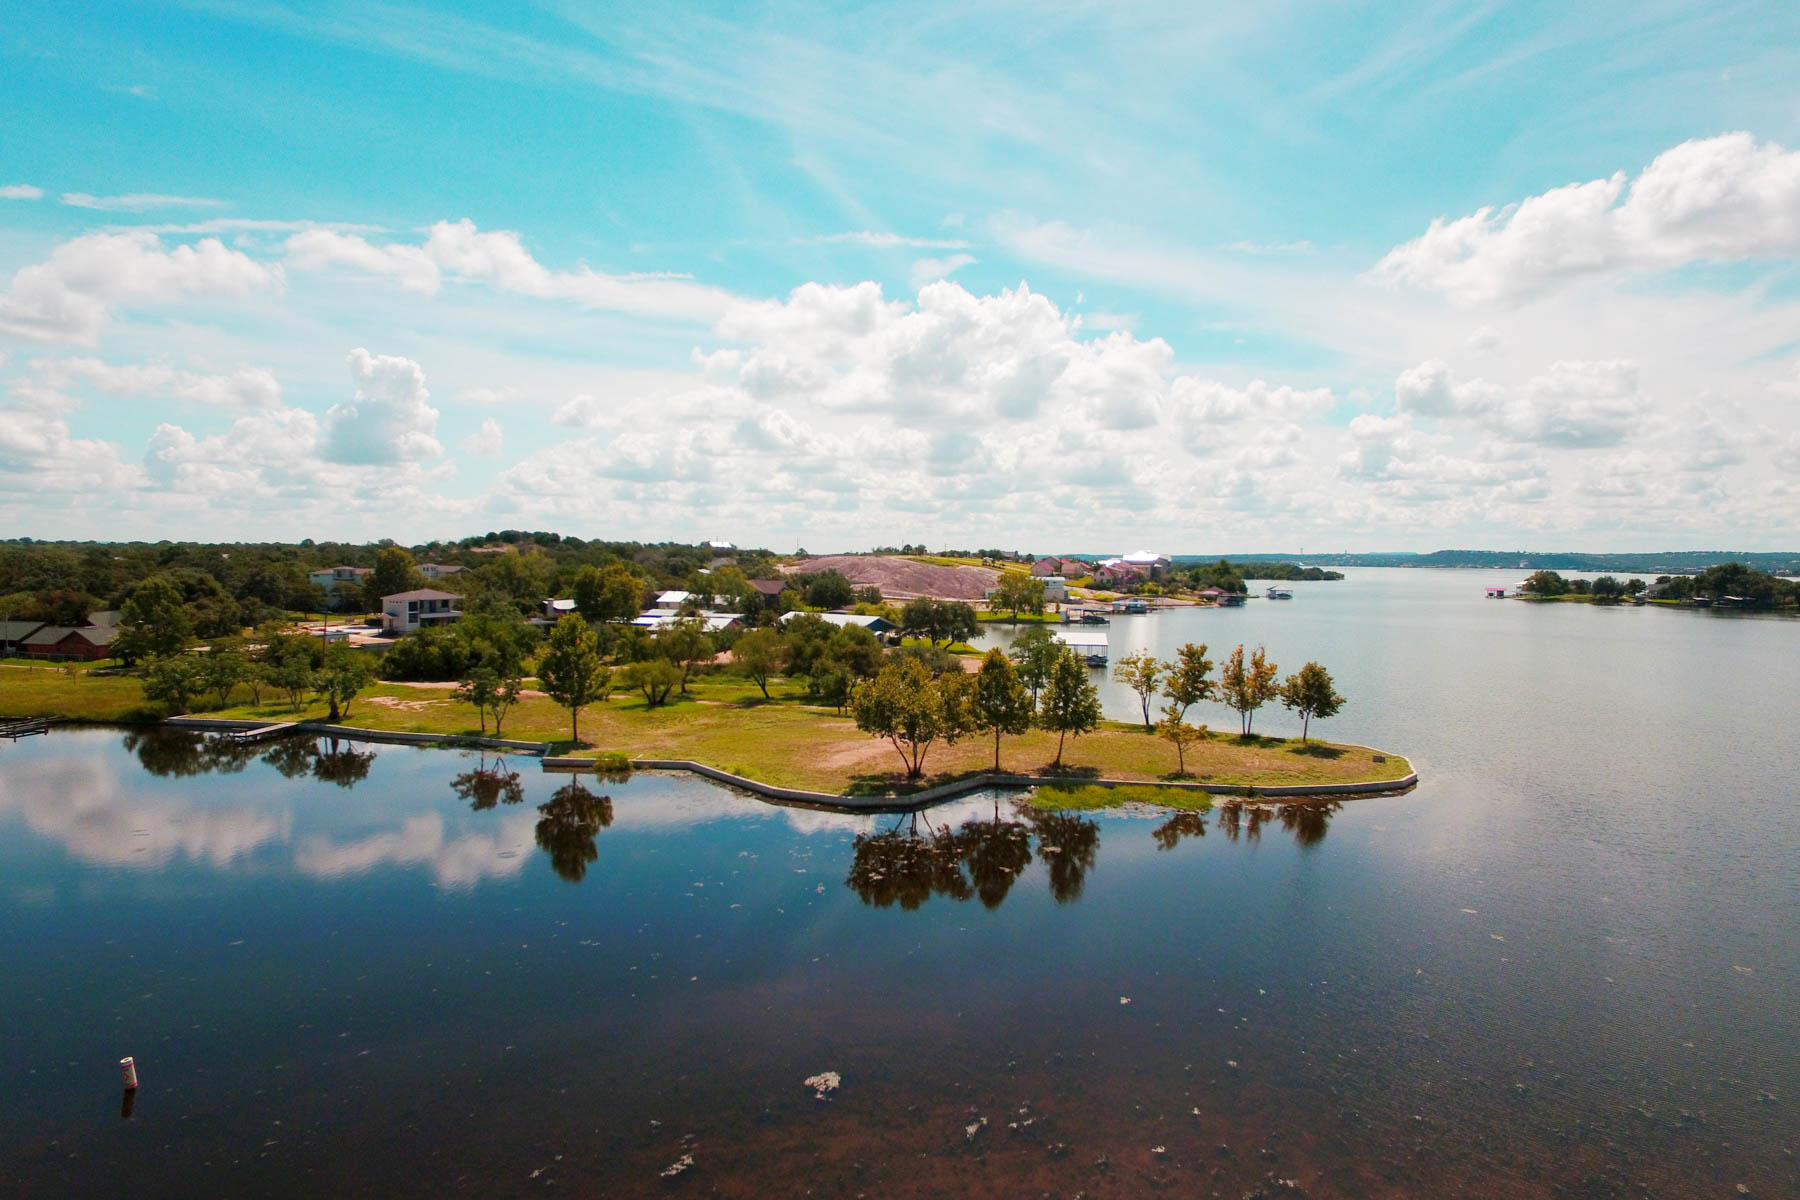 Land for Sale at A Rare Opportunity on Lake LB 701 Woodland Hills Dr Granite Shoals, Texas, 78654 United States